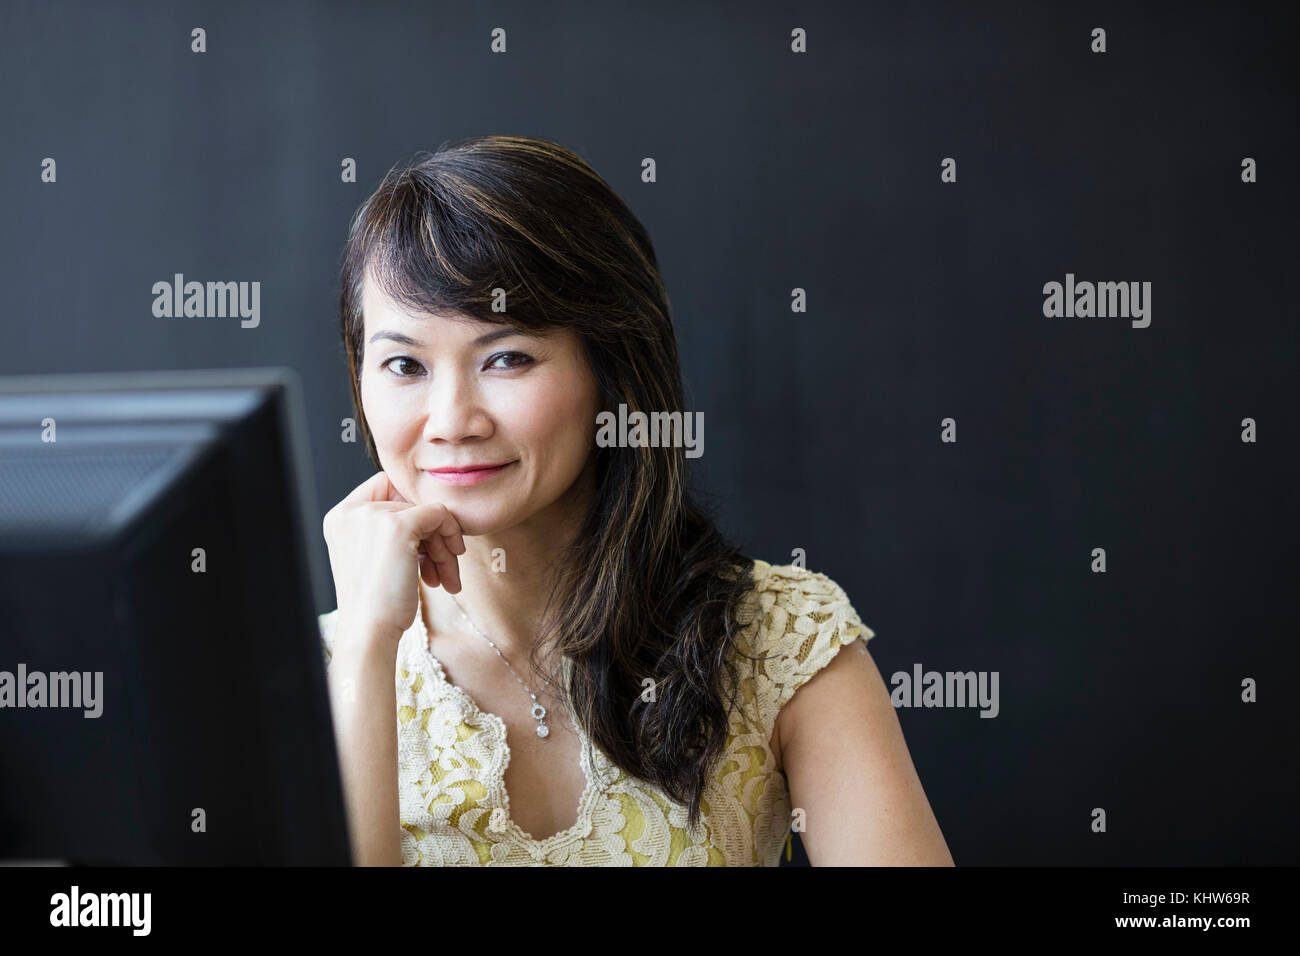 Business woman working at computer - Stock Image